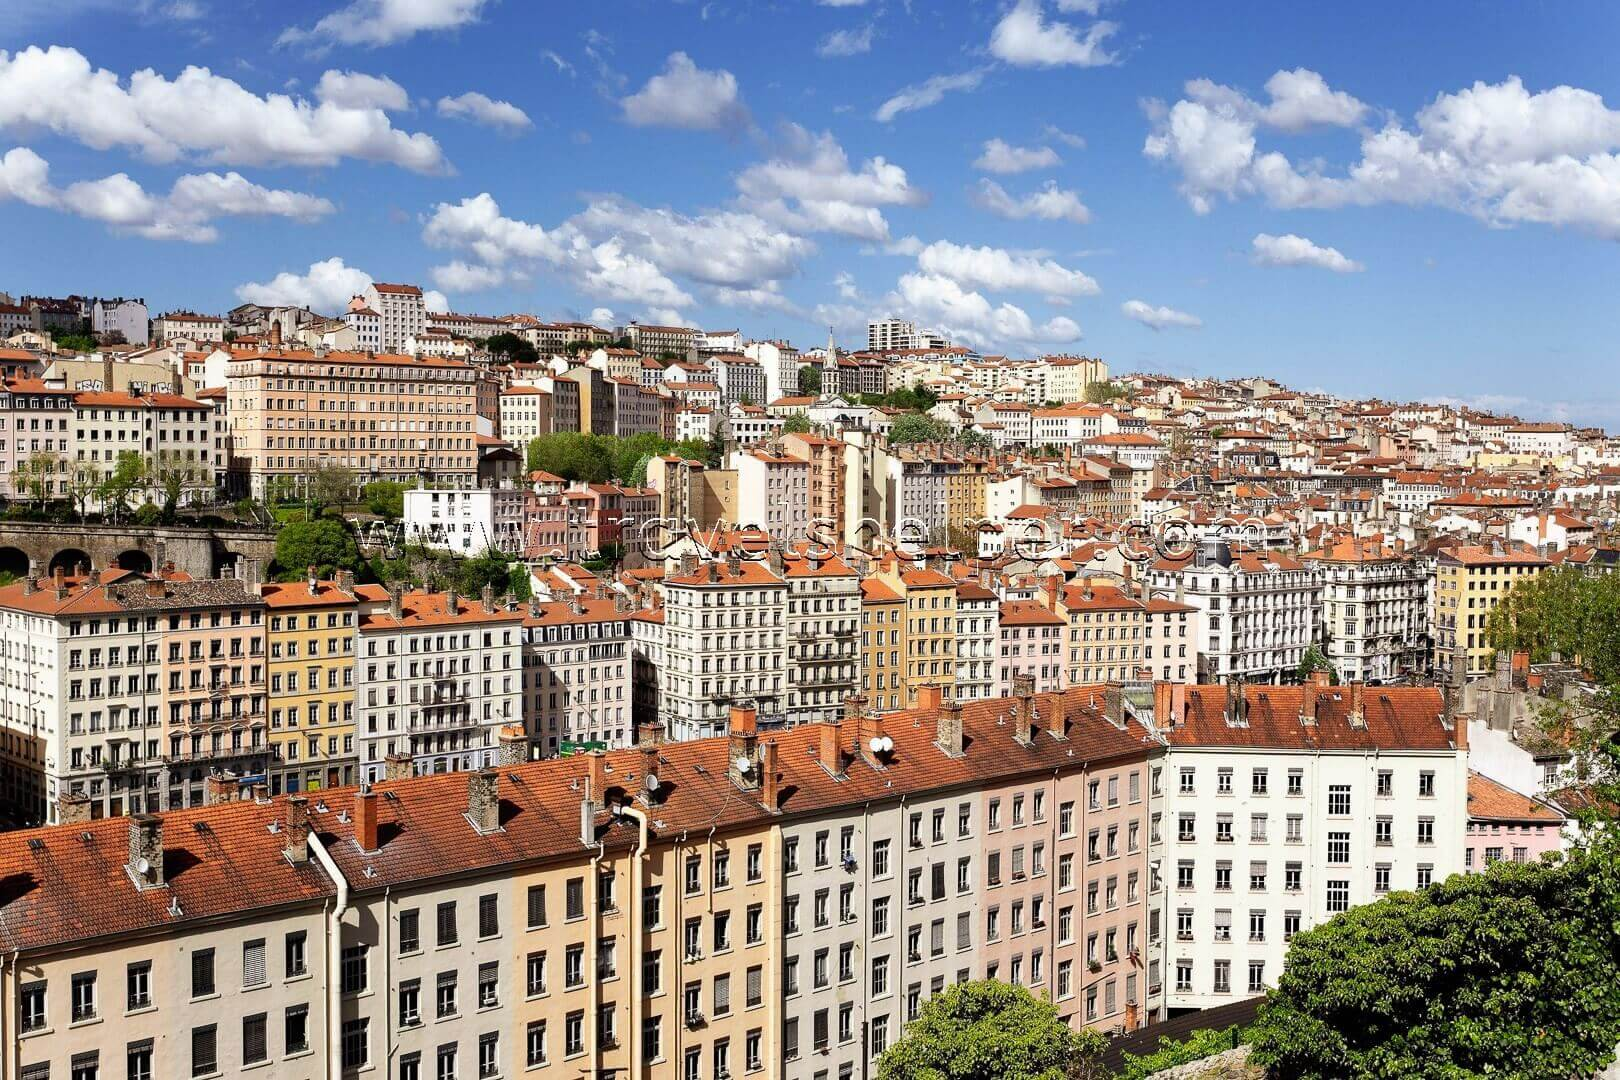 Lyon, France - 10 WONDERFUL CITIES IN EUROPE THAT TOURISTS OVERLOOK